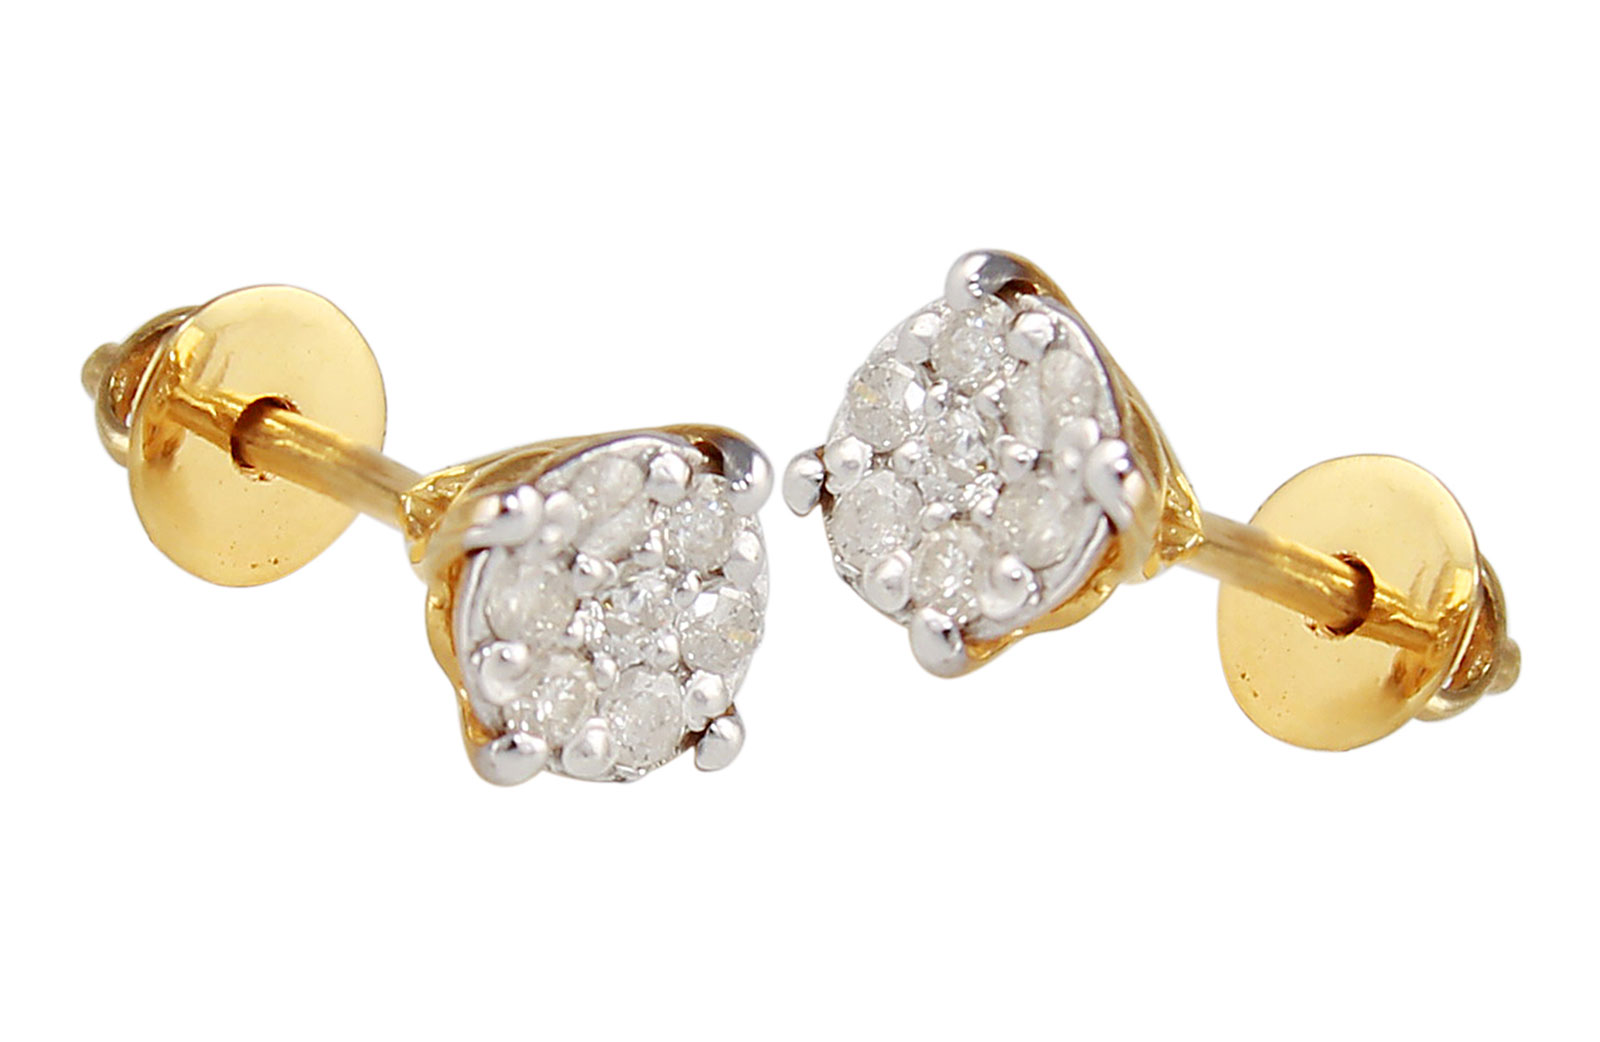 Vera Perla 18K Solid Yellow Gold and 0.14Cts Genuine Diamonds Twisted Solitaire Push Back Earrings